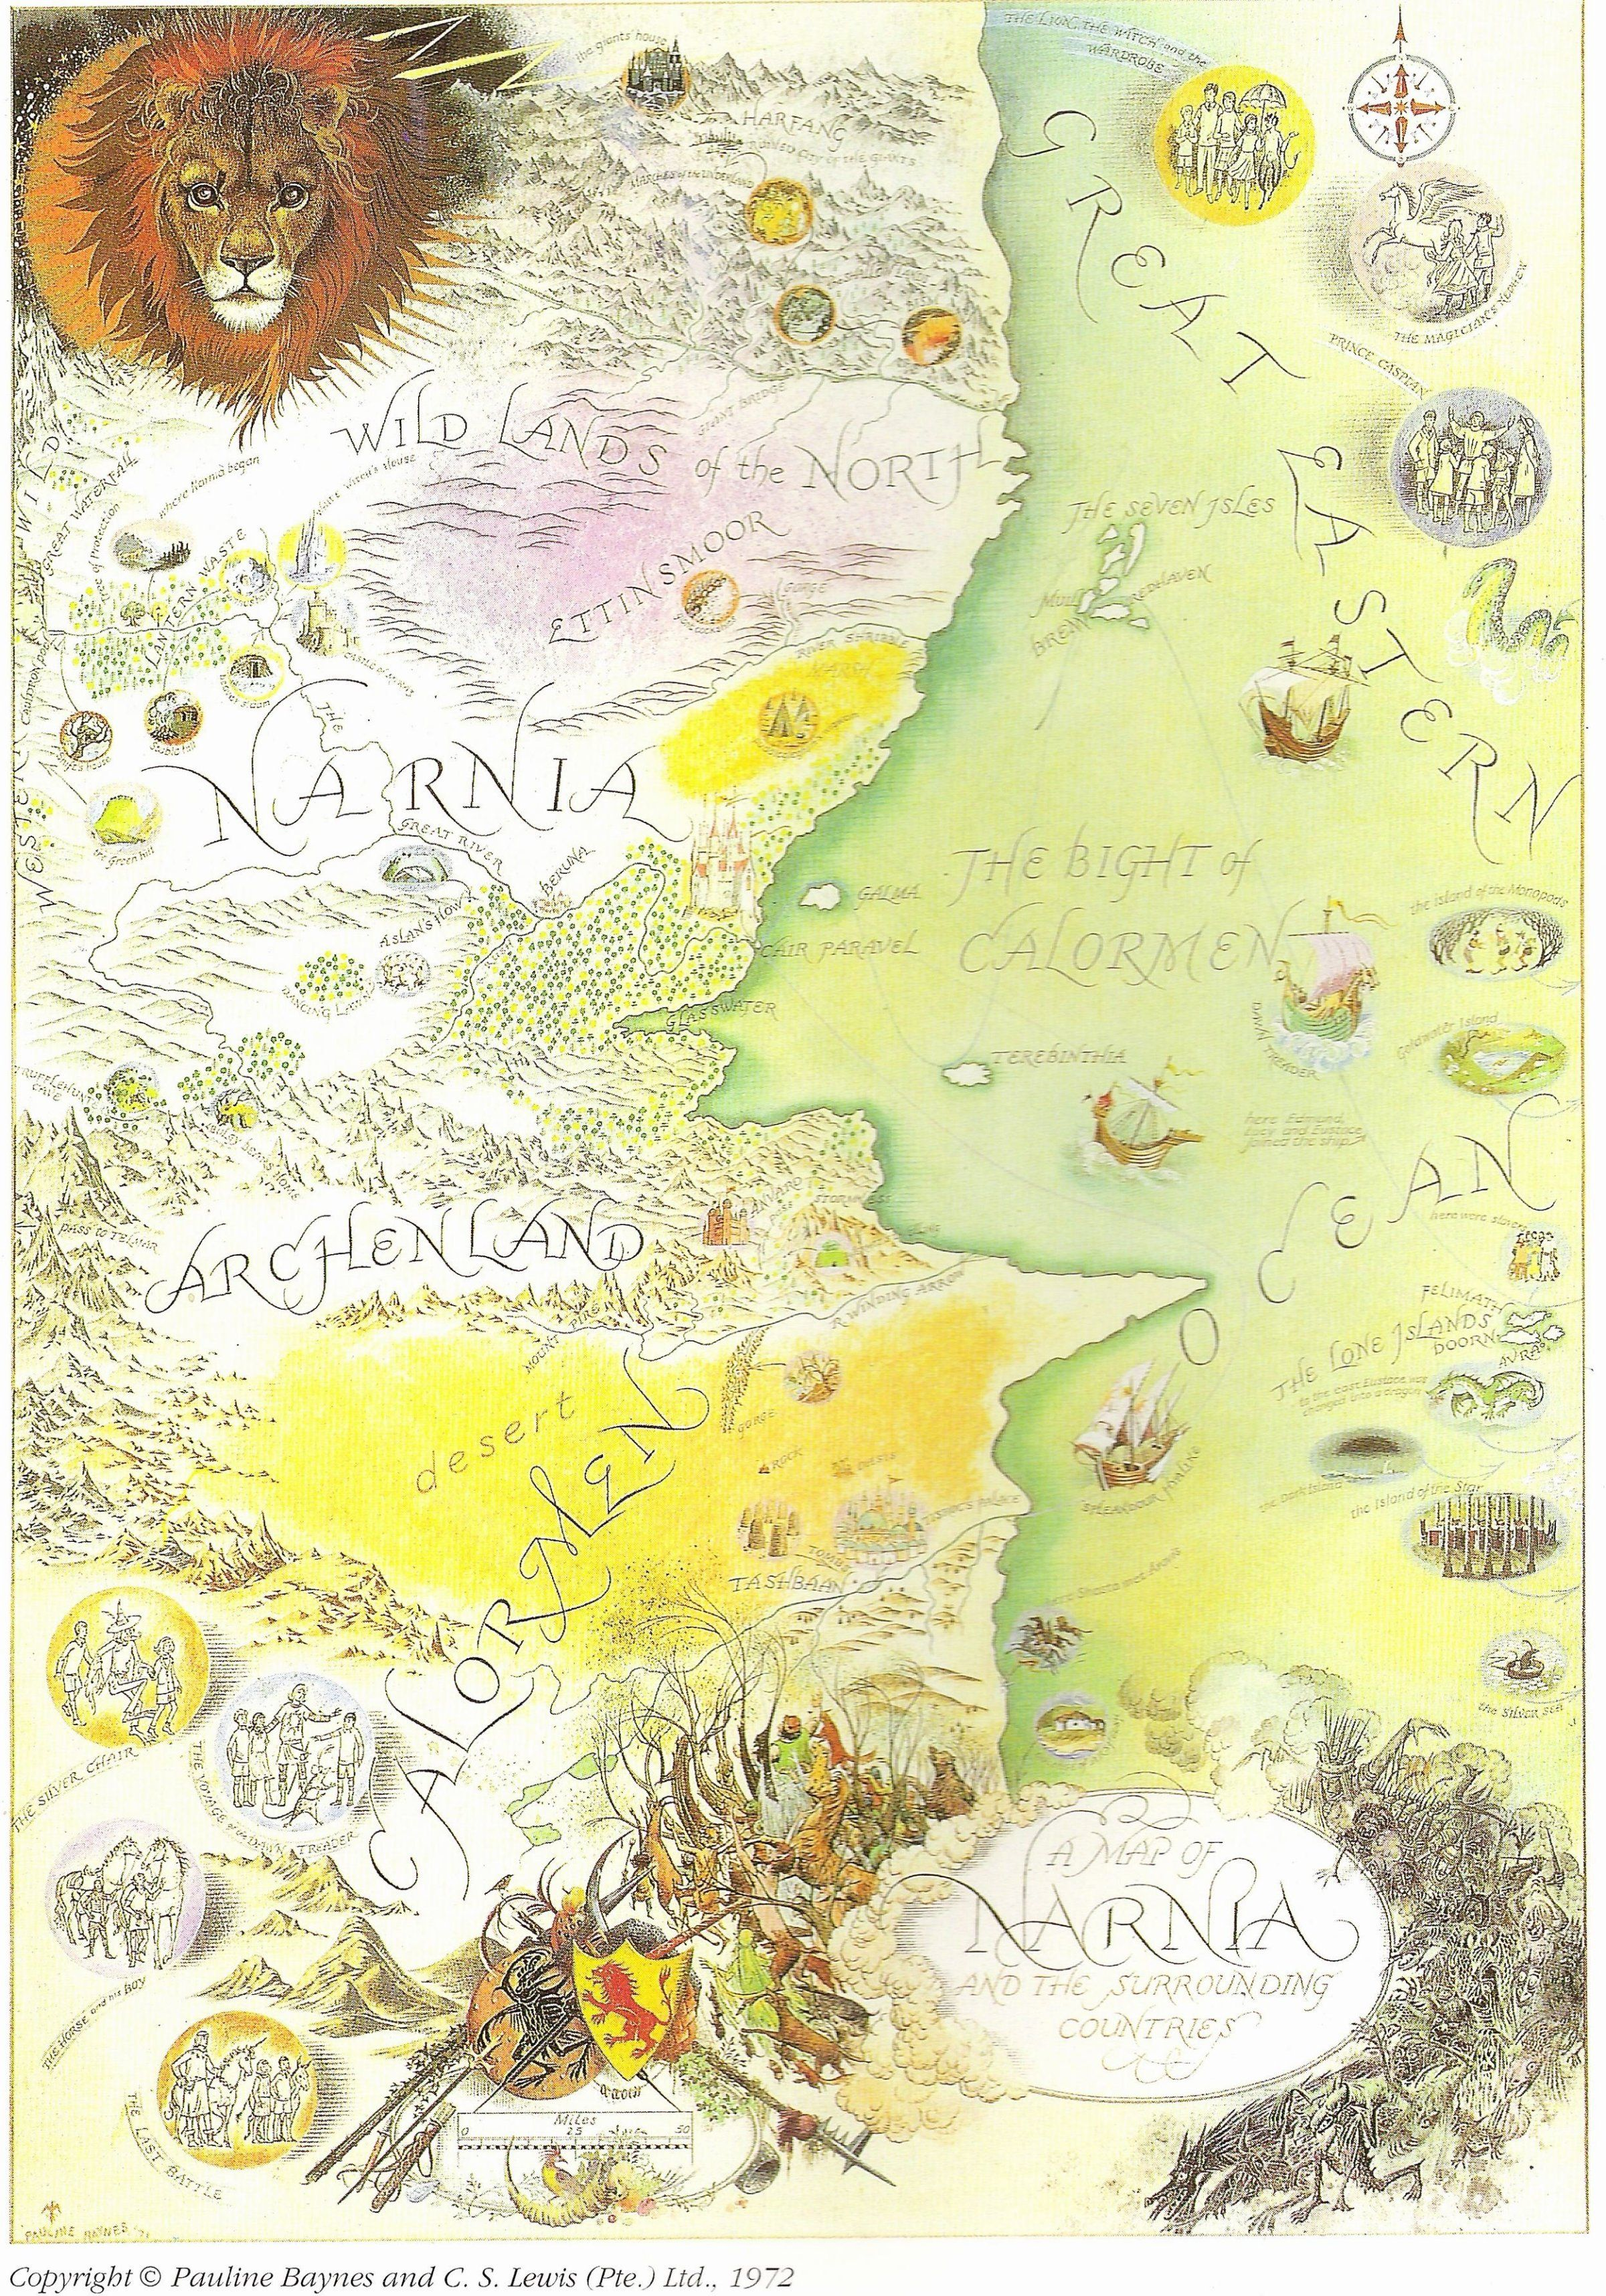 chronicles of narnia map - Google Search   NACIS2015 ...